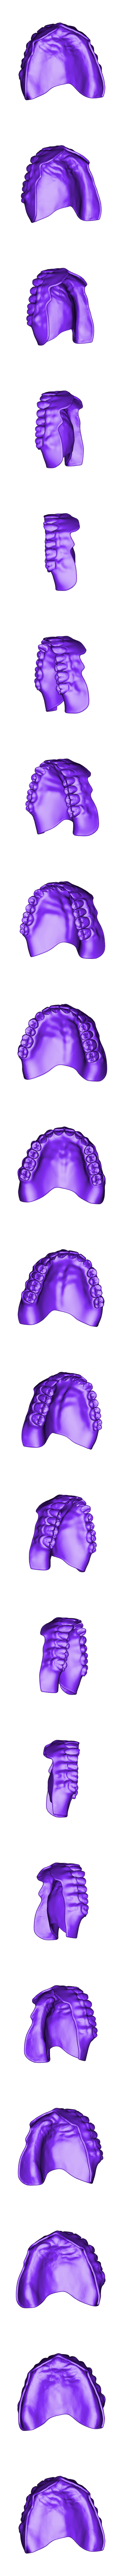 FullDentureUpper.stl Download OBJ file Full Dentures with Many Production Options  • 3D printing object, LabMagic3DCAD